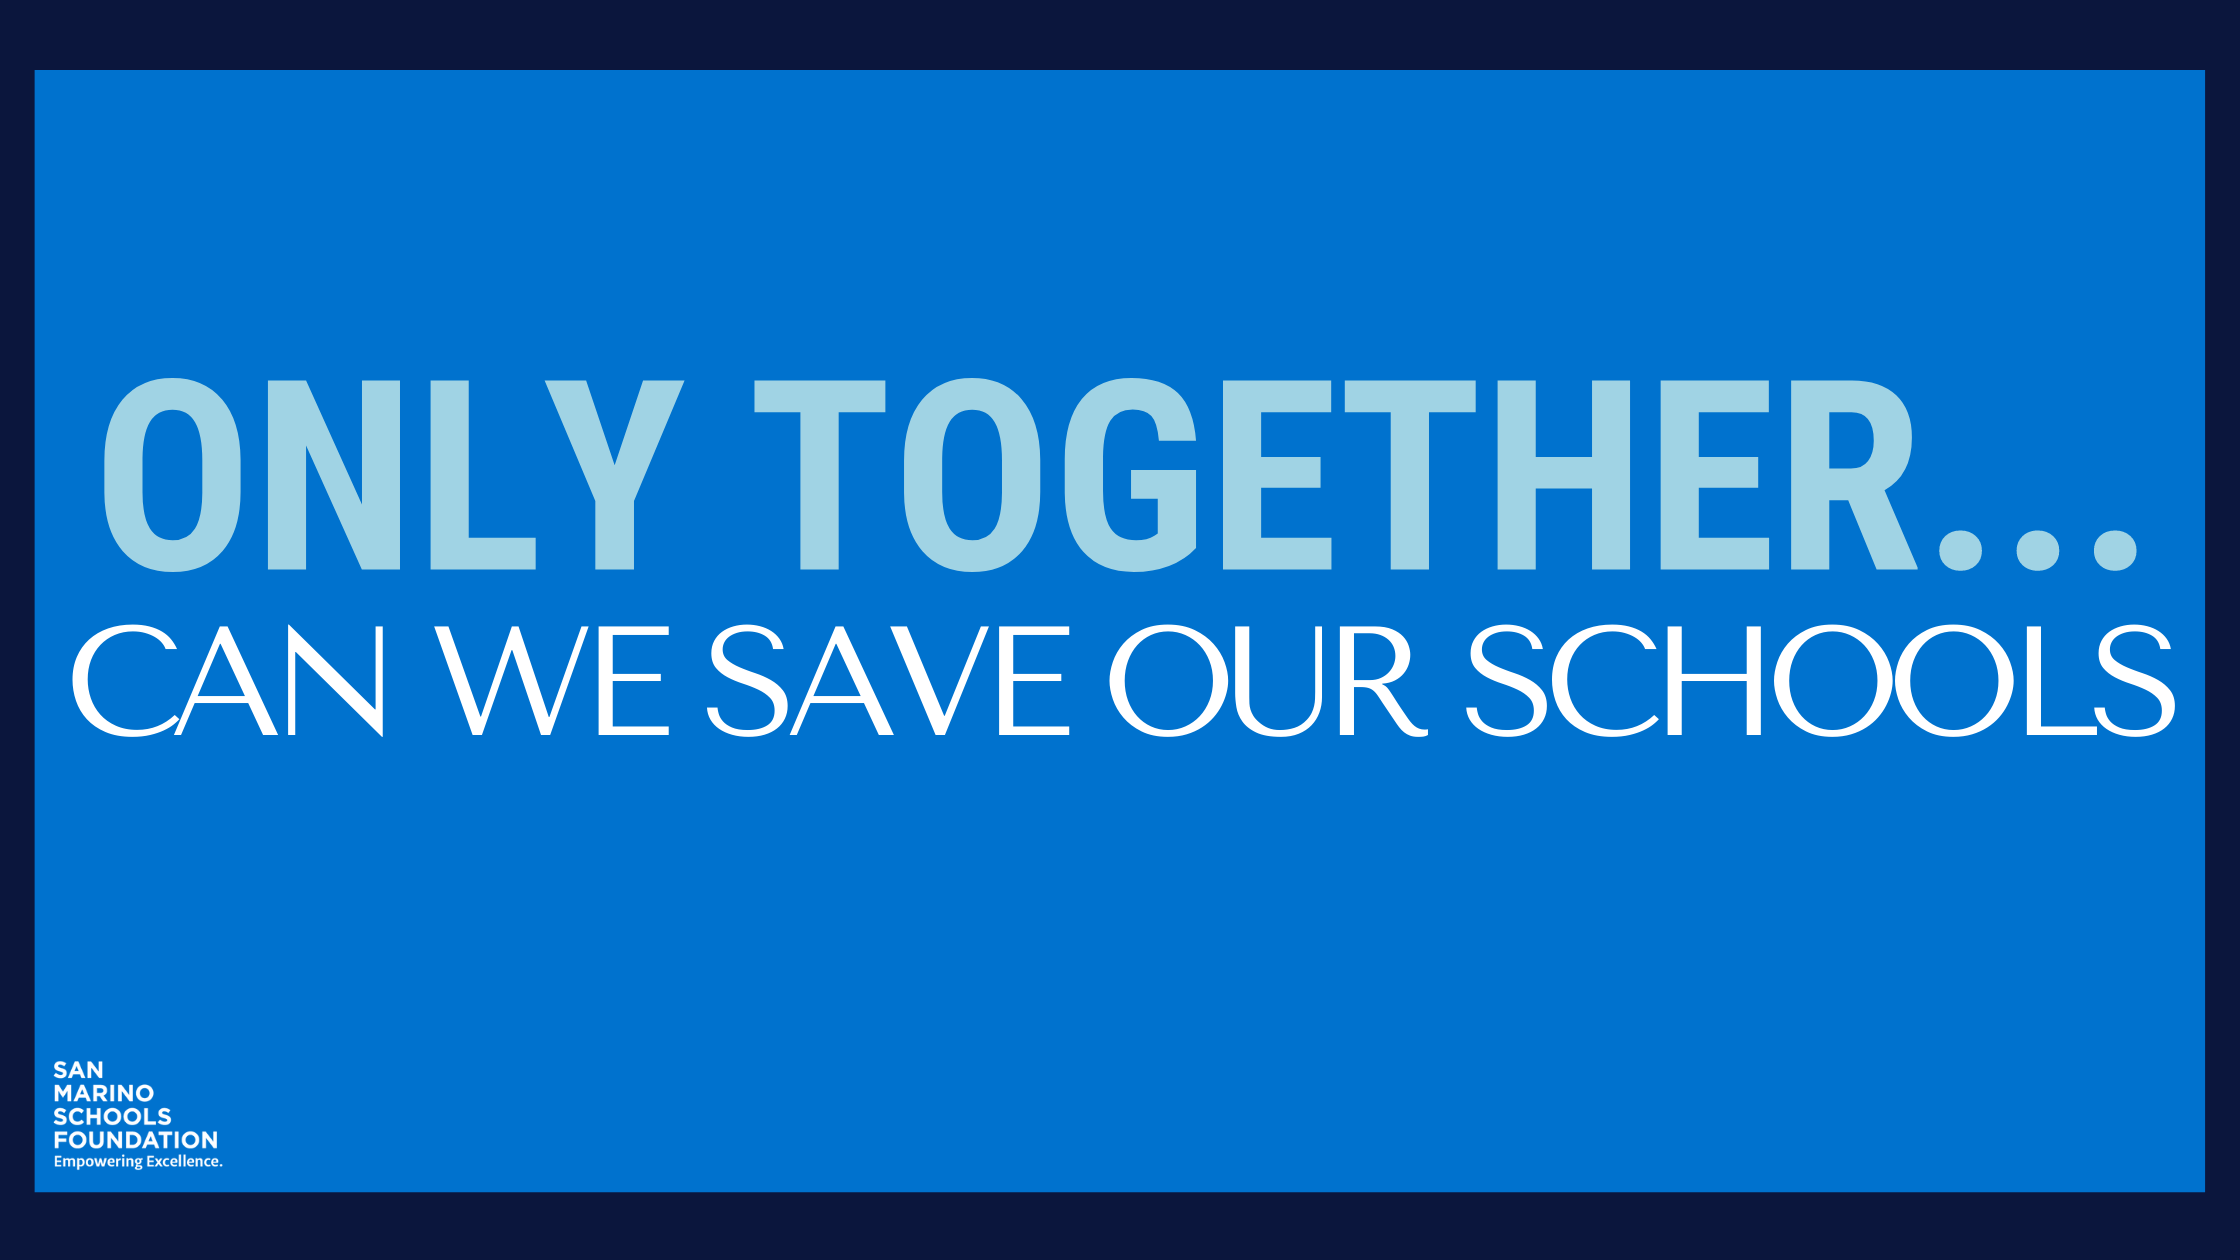 ONLY TOGETHER...can we save our schools!